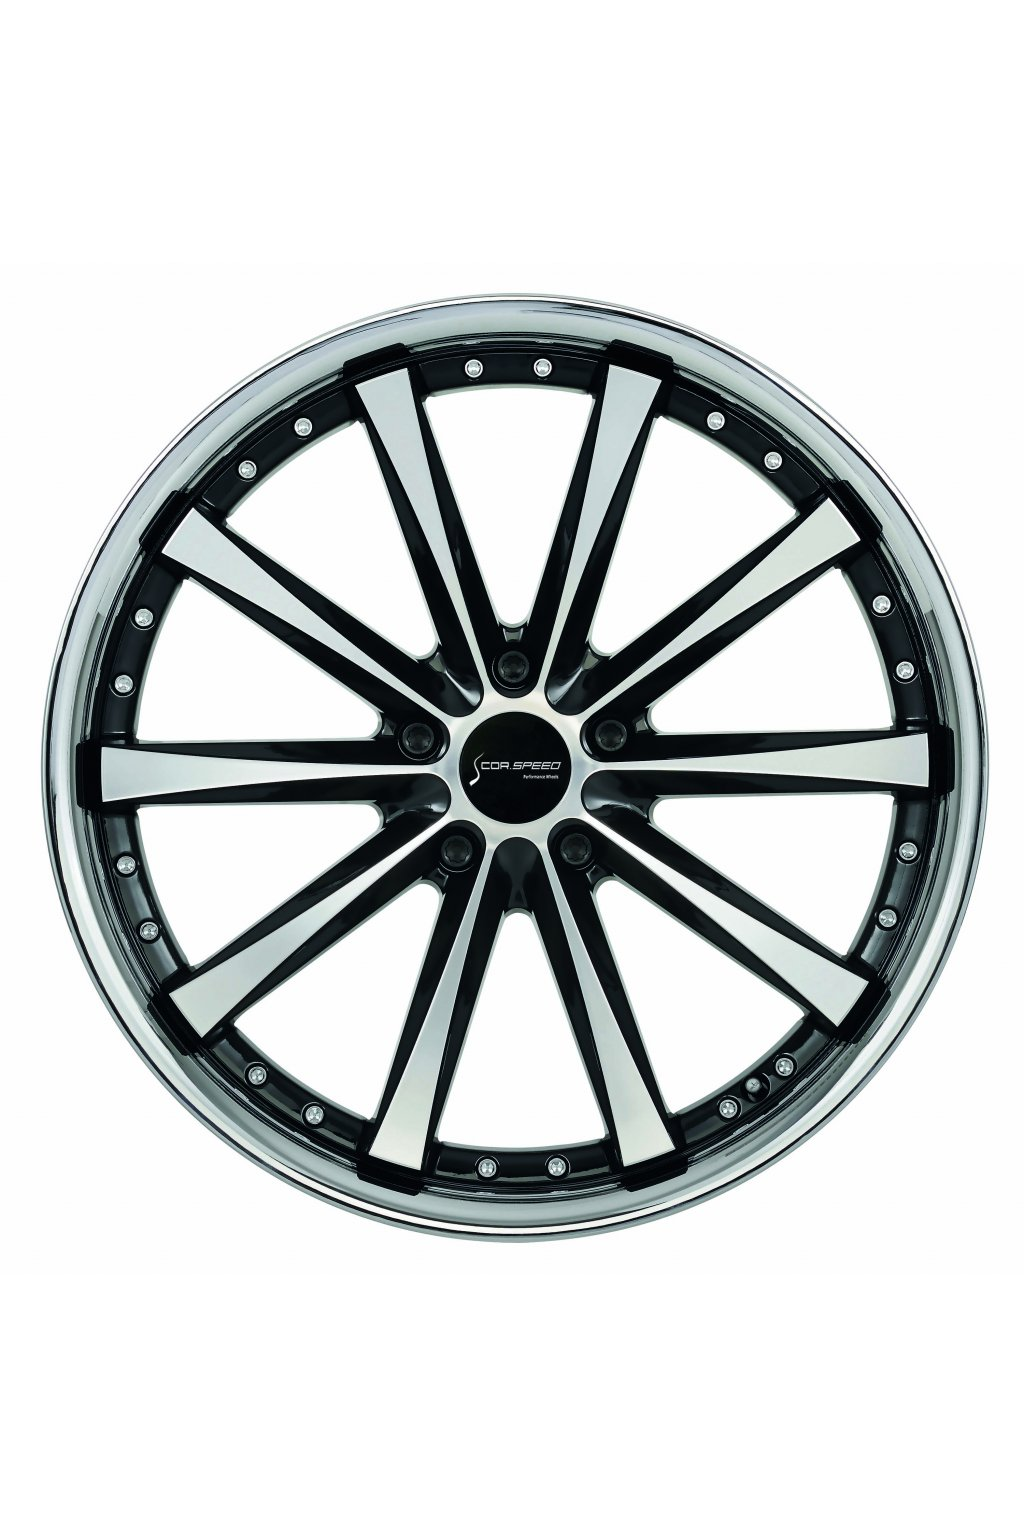 Disk CORSPEED ARROWS 9.5x19 / 5x112